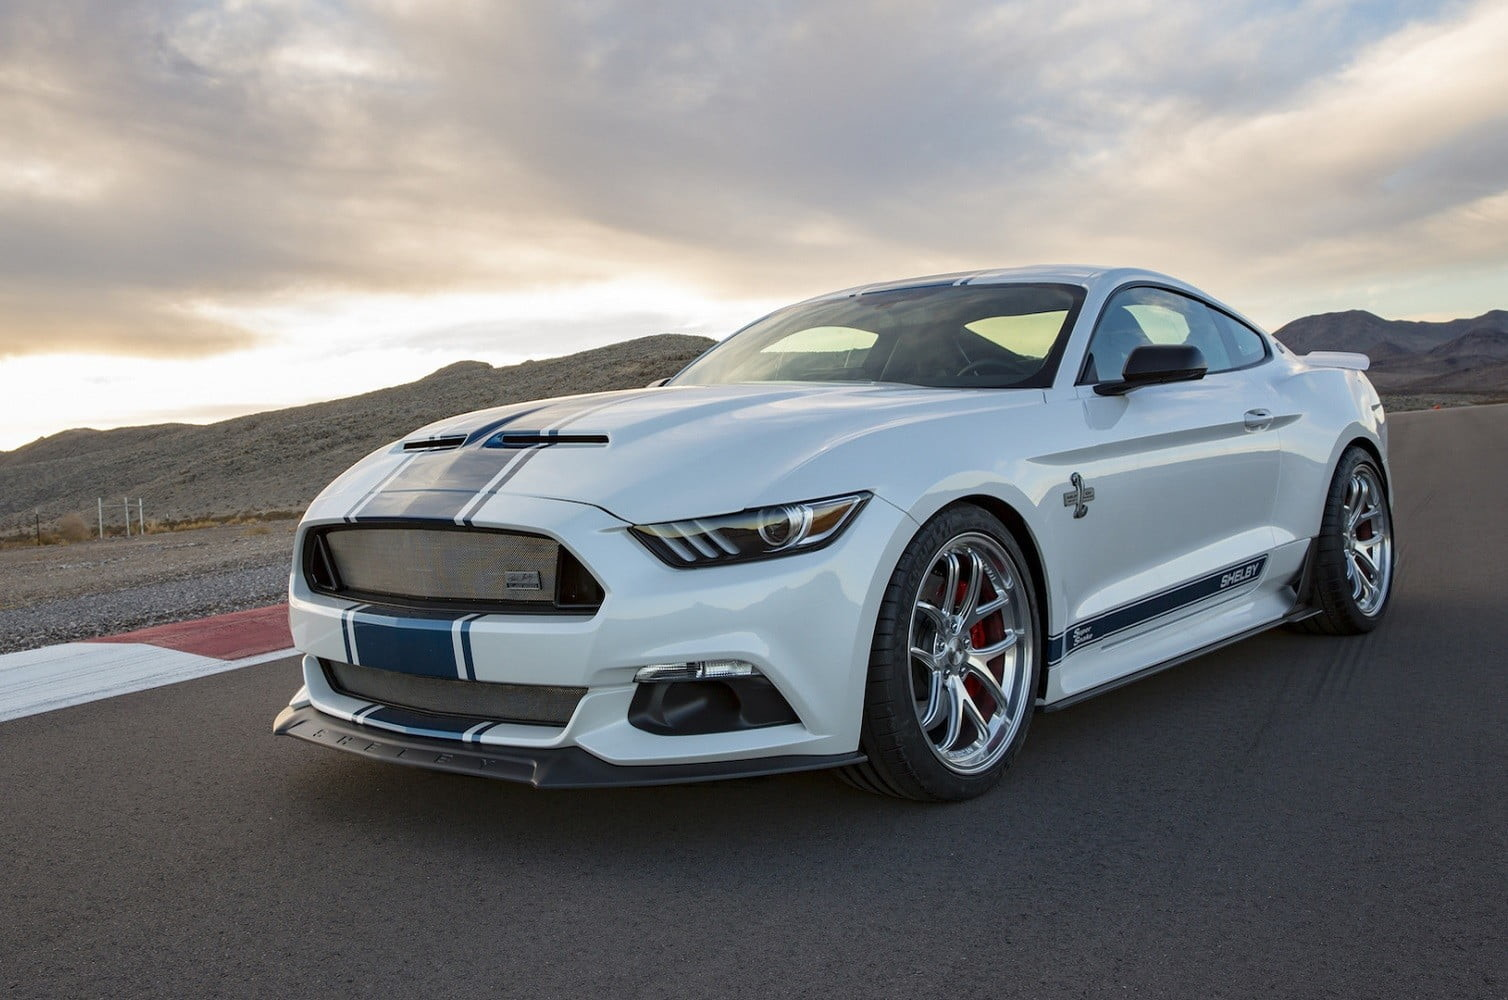 2017 Ford Mustang Shelby Super Snake 50th anniversary